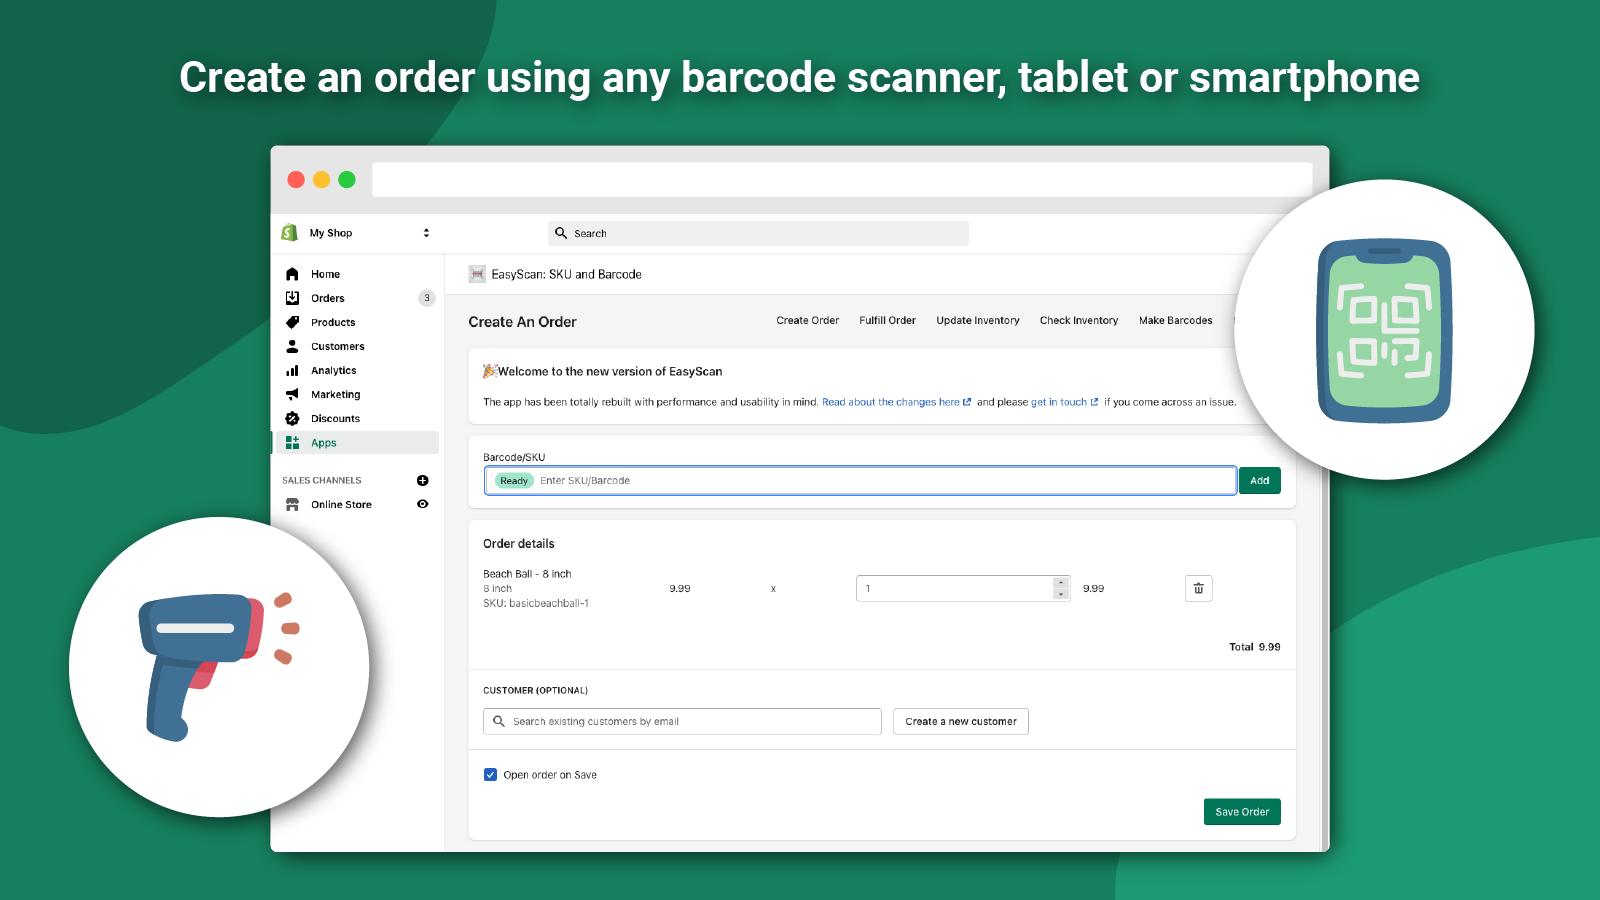 Create an order using a barcode scanner, tablet or smartphone